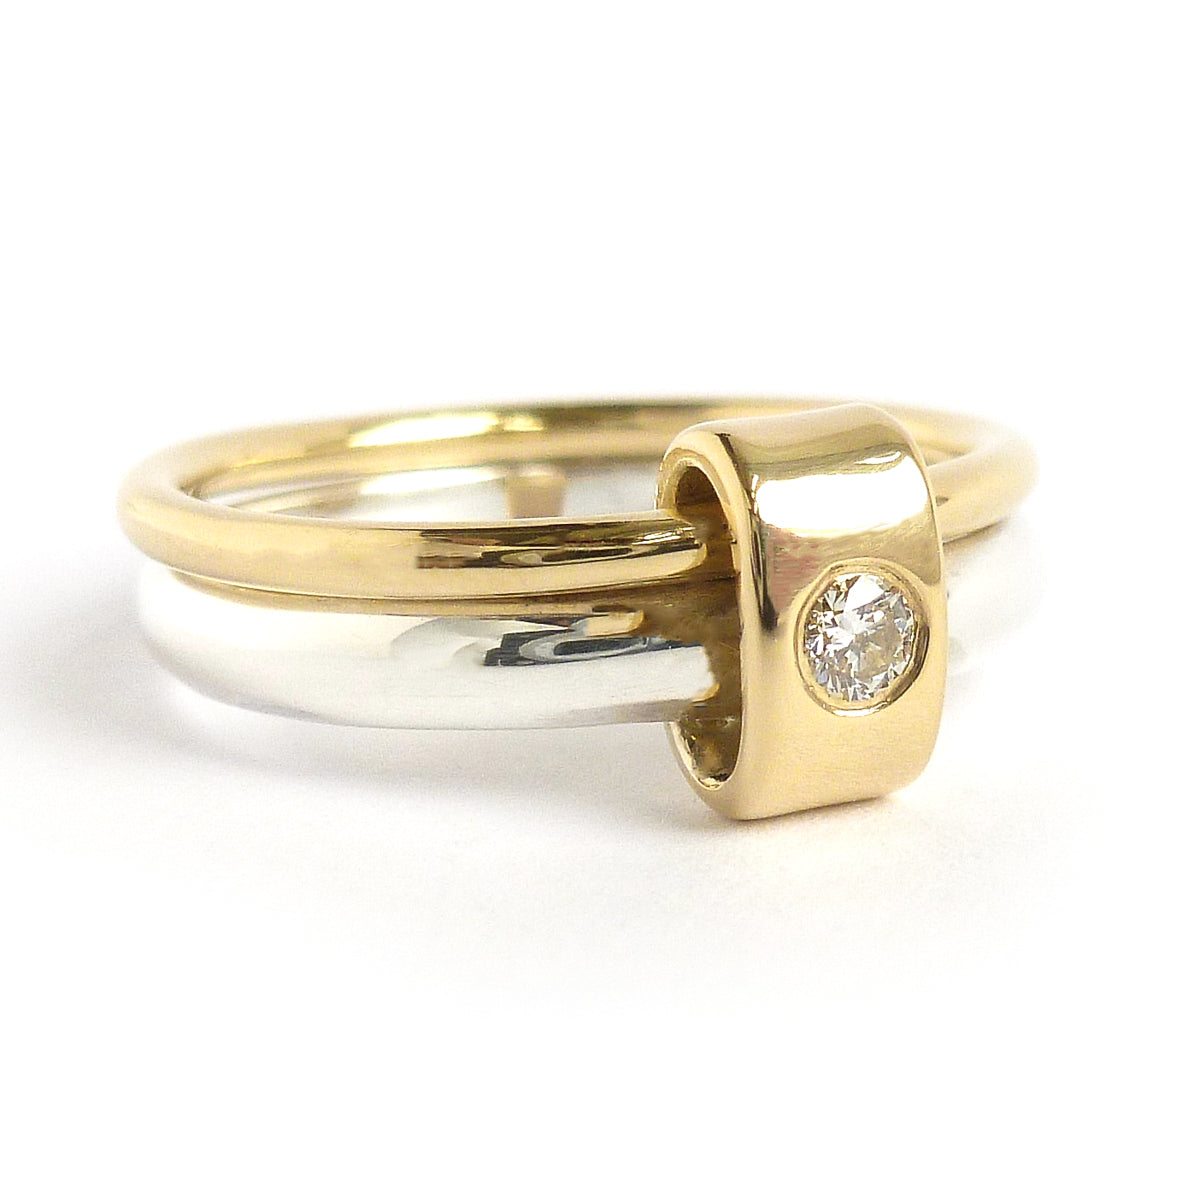 Contemporary jewellery engagement ring. Remodelling commissioning.